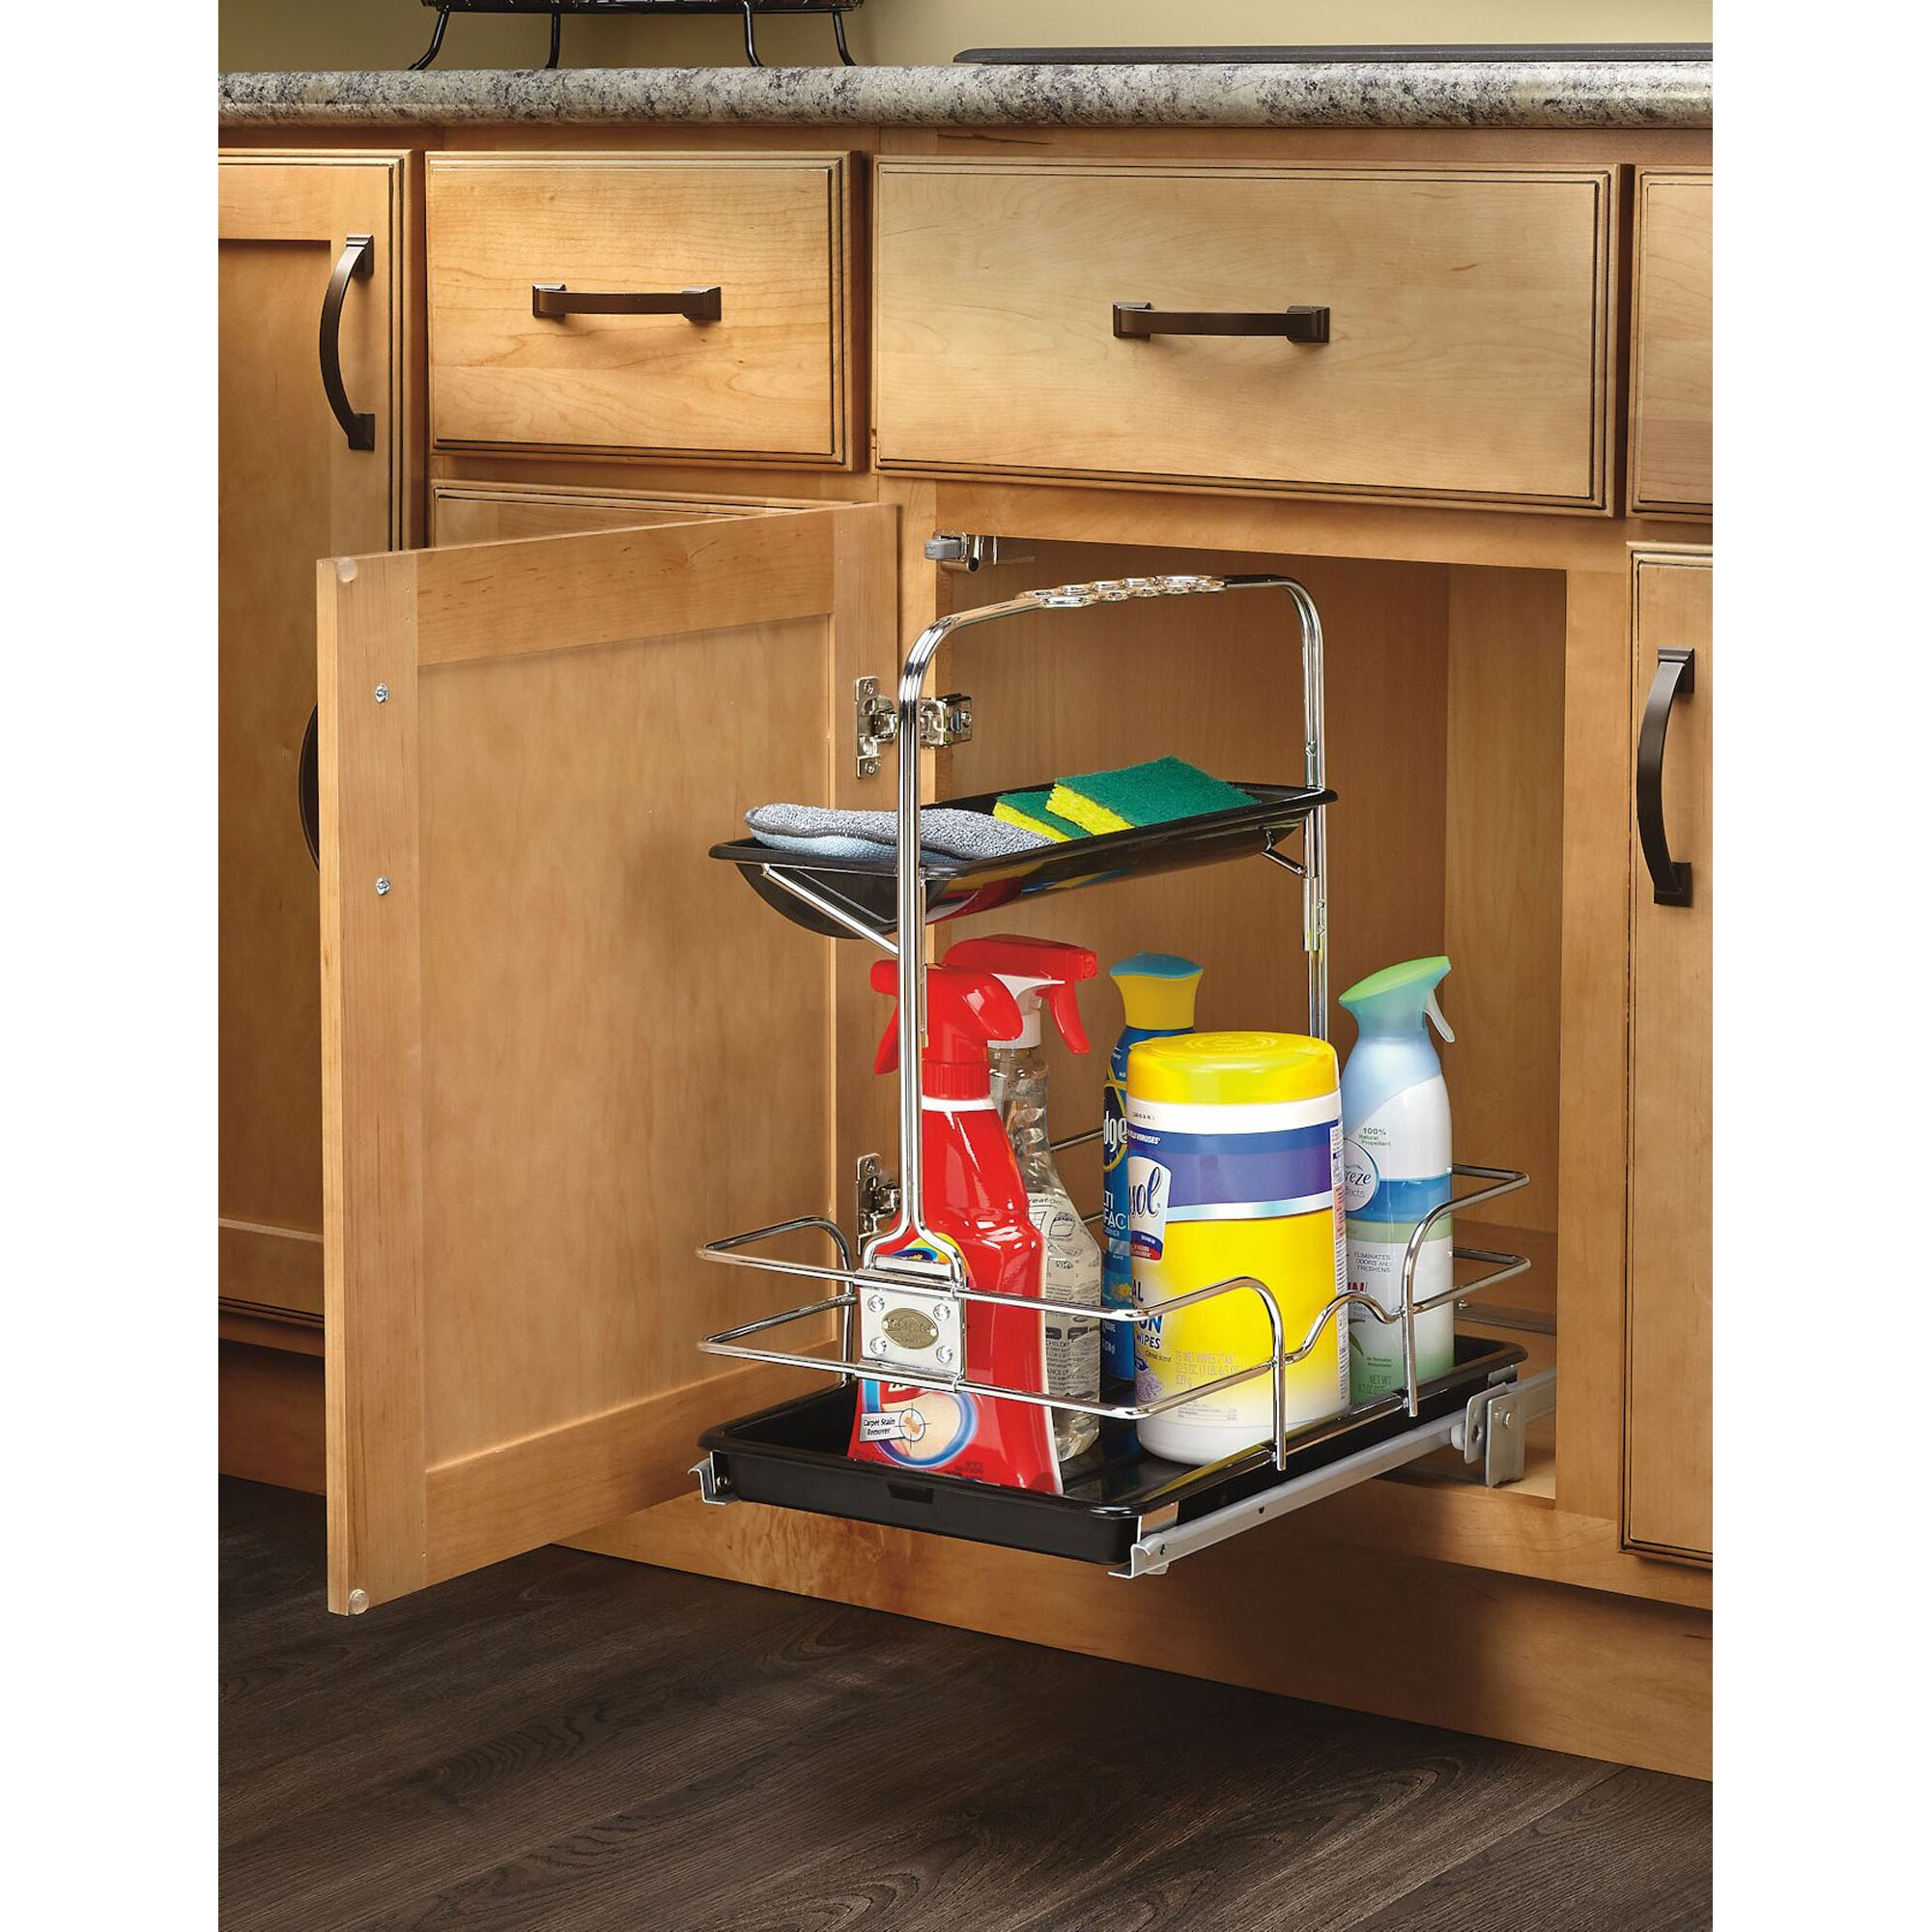 Cleaning Kitchen Cabinets: Rev-A-Shelf Cleaning Caddy & Reviews